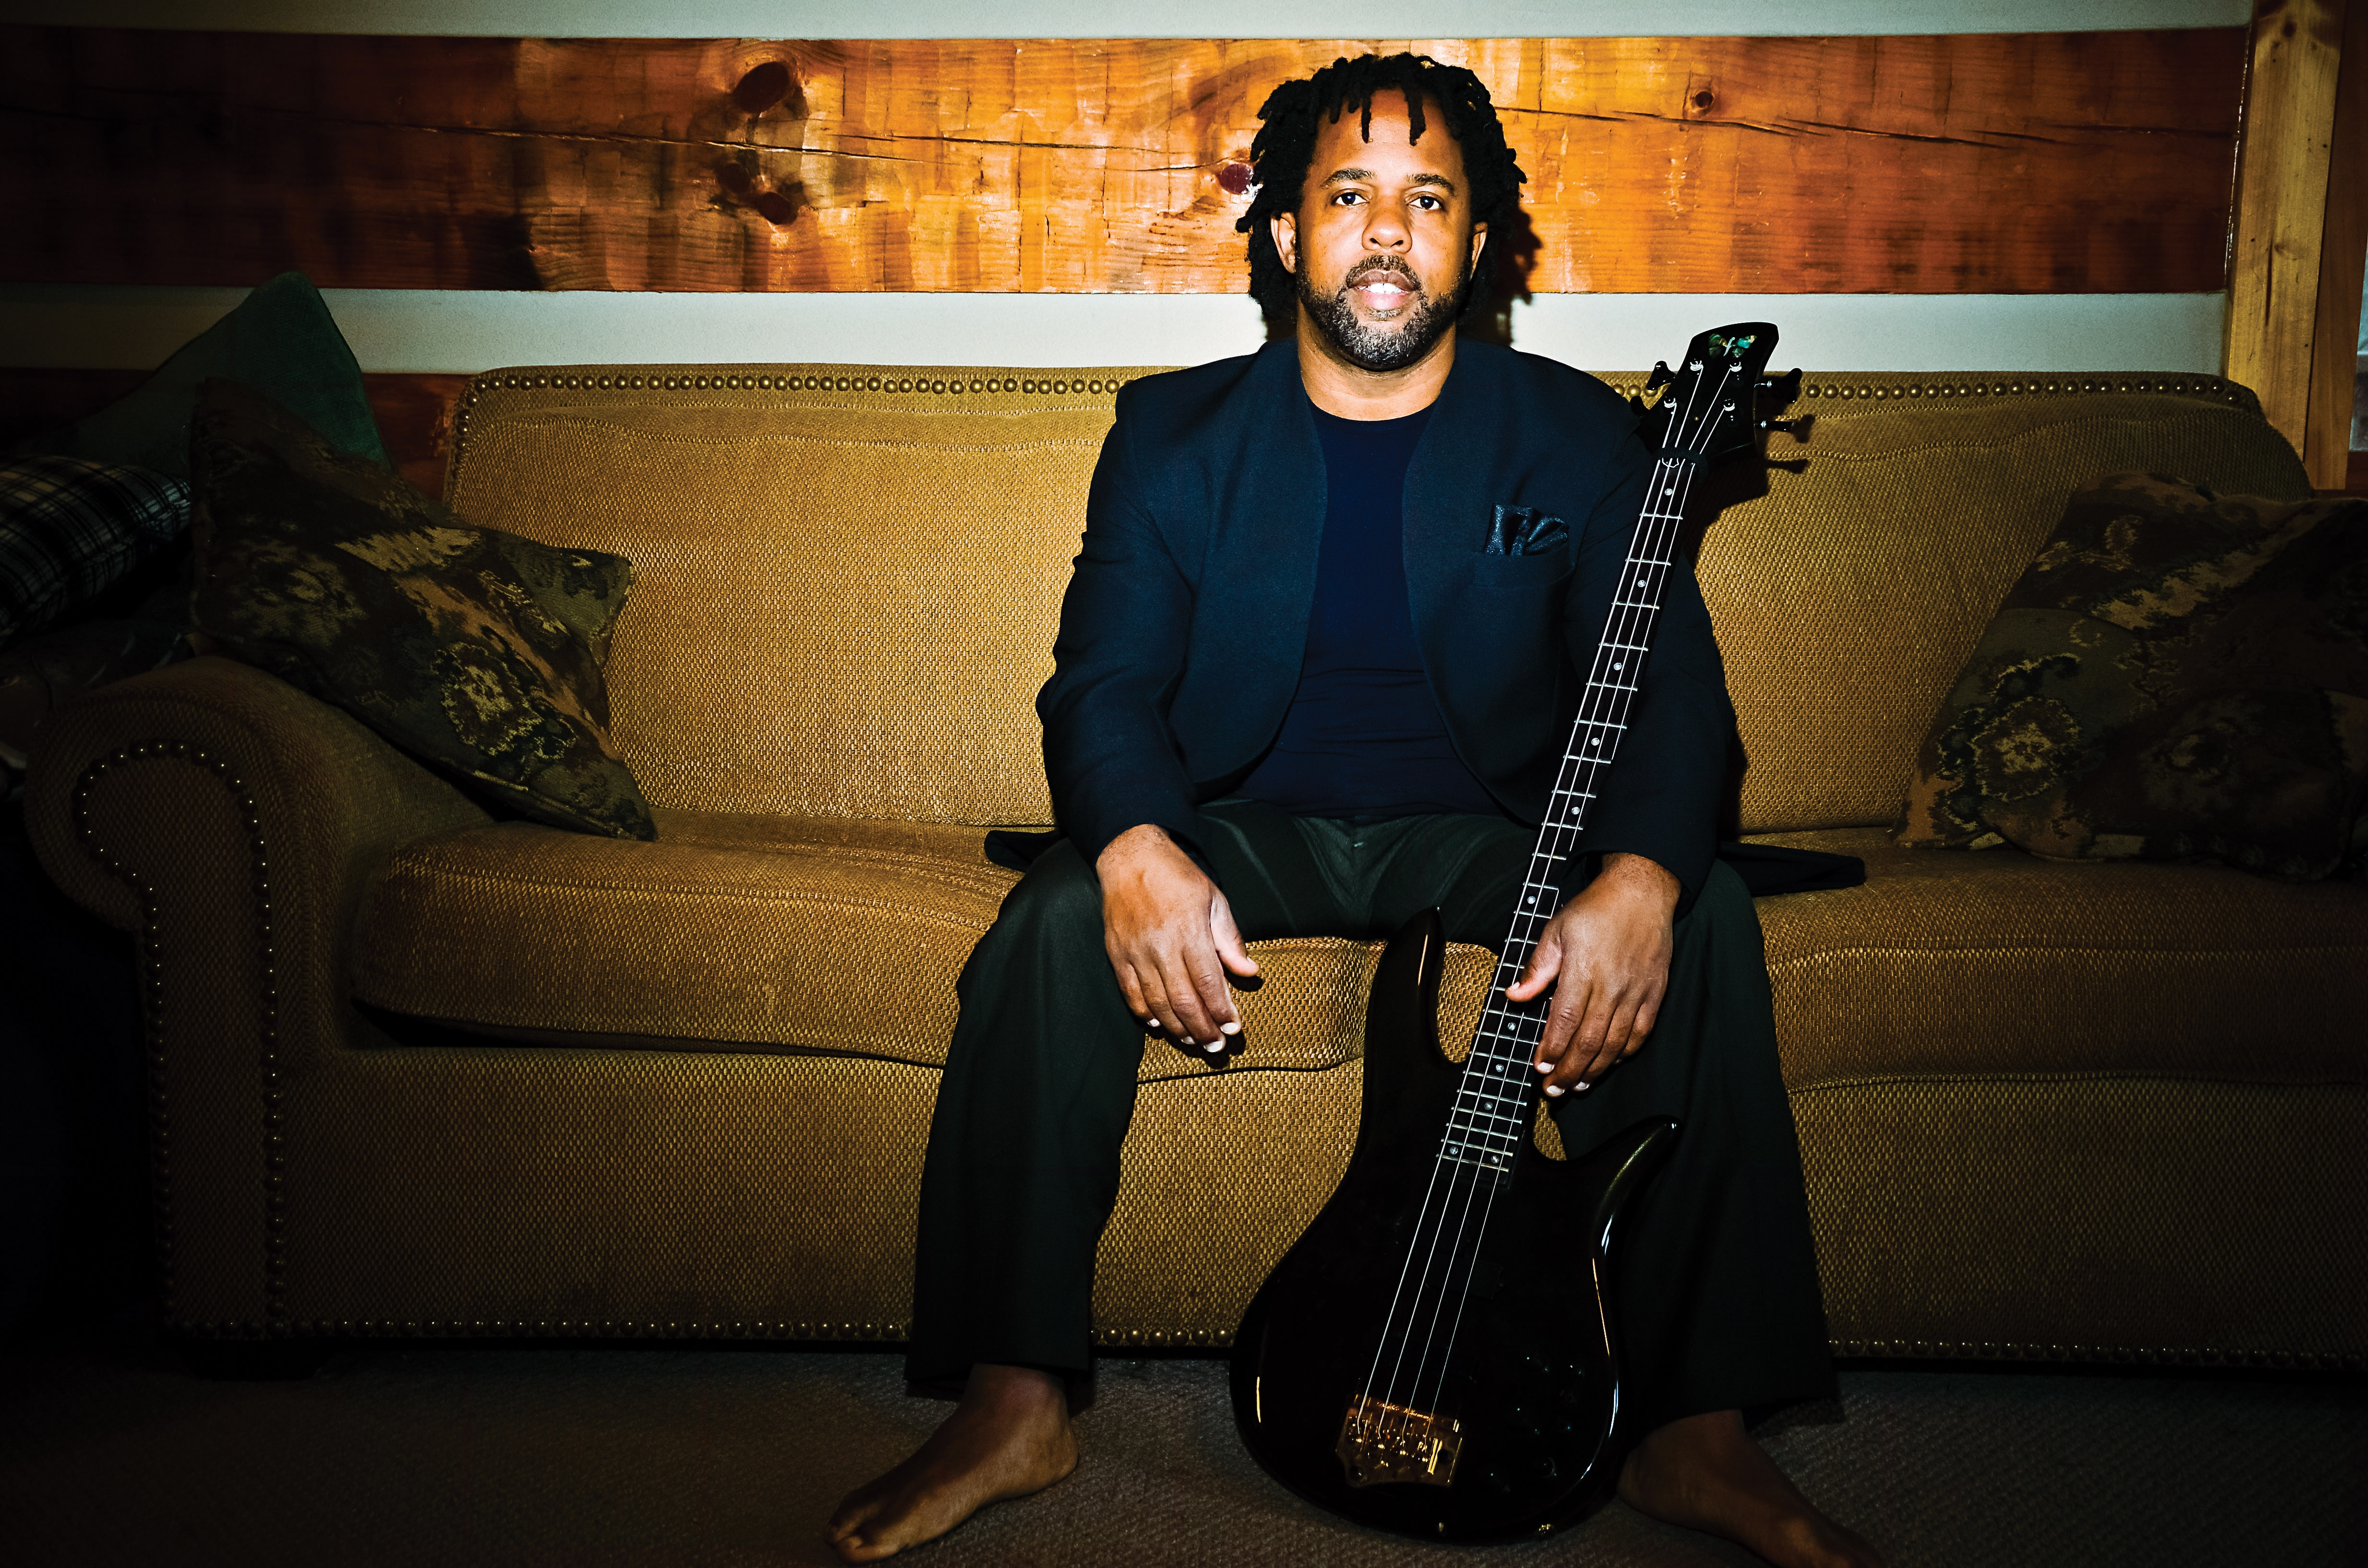 Victor Wooten for Madeinnyjazz